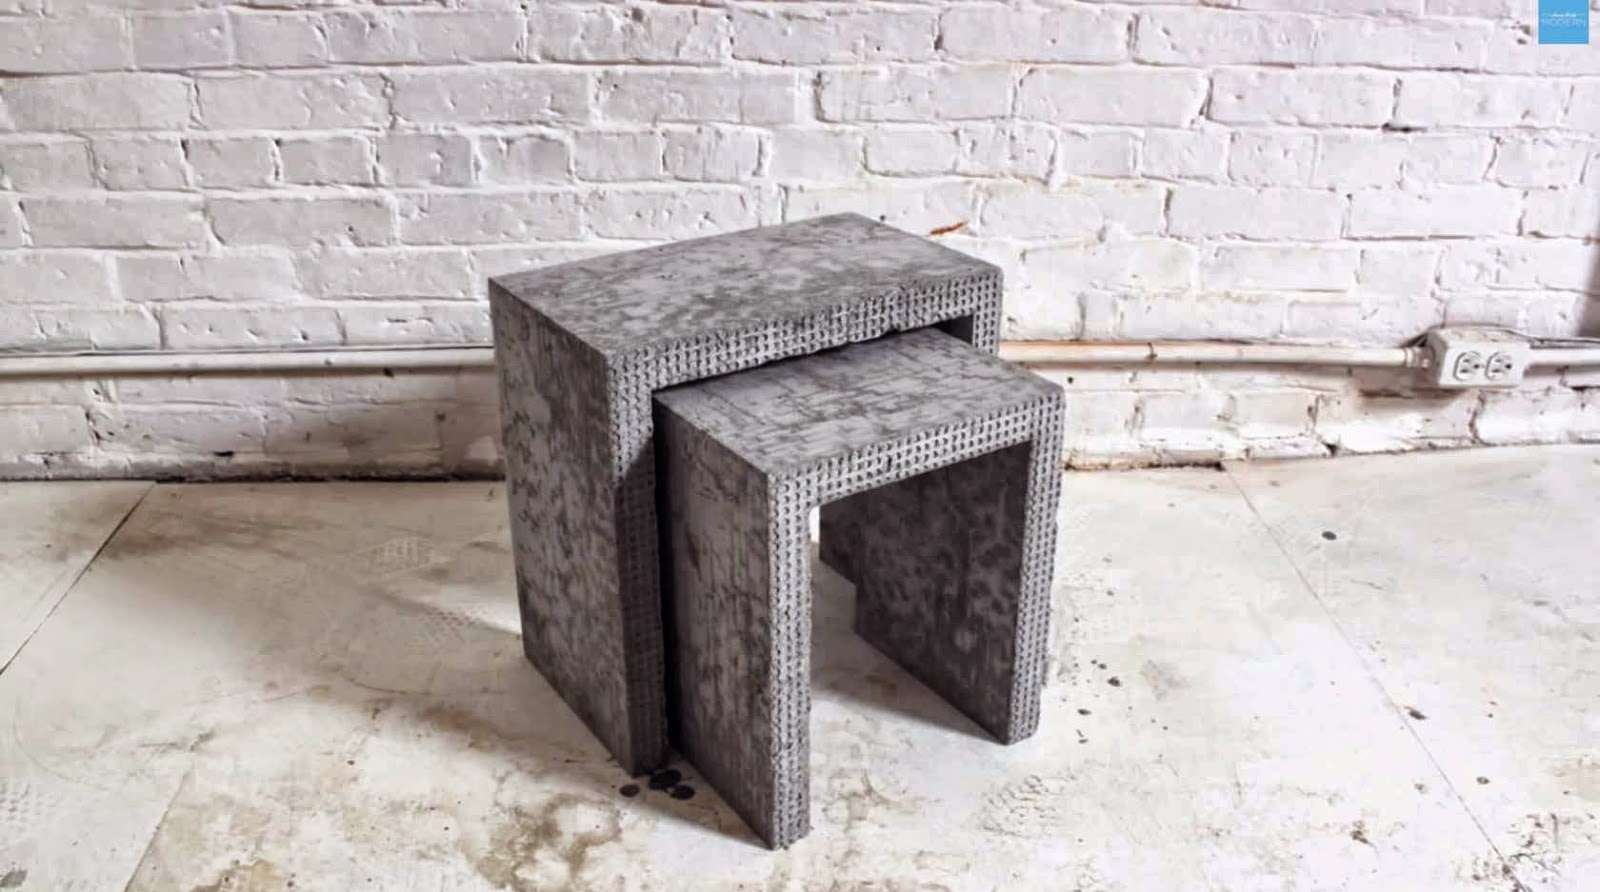 diy concrete coffee and side tables outdoor accent table small metal outside macys west elm kitchen wood pedestal battery powered desk lamp big lots couches gothic furniture patio